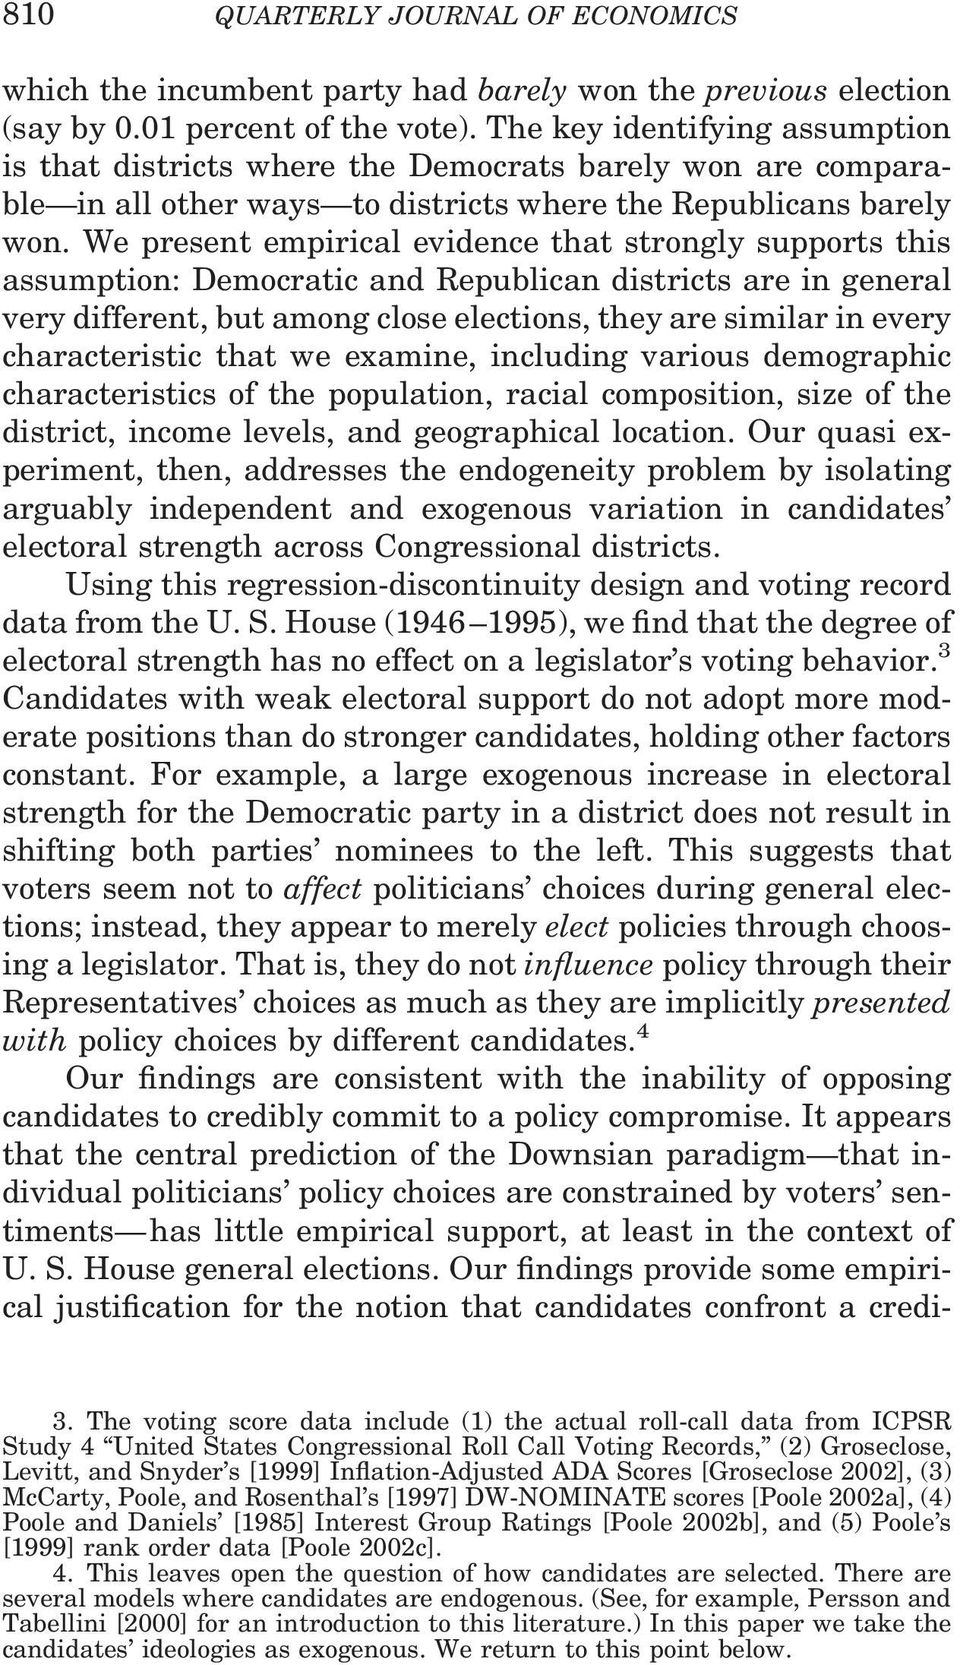 We present empirical evidence that strongly supports this assumption: Democratic and Republican districts are in general very different, but among close elections, they are similar in every